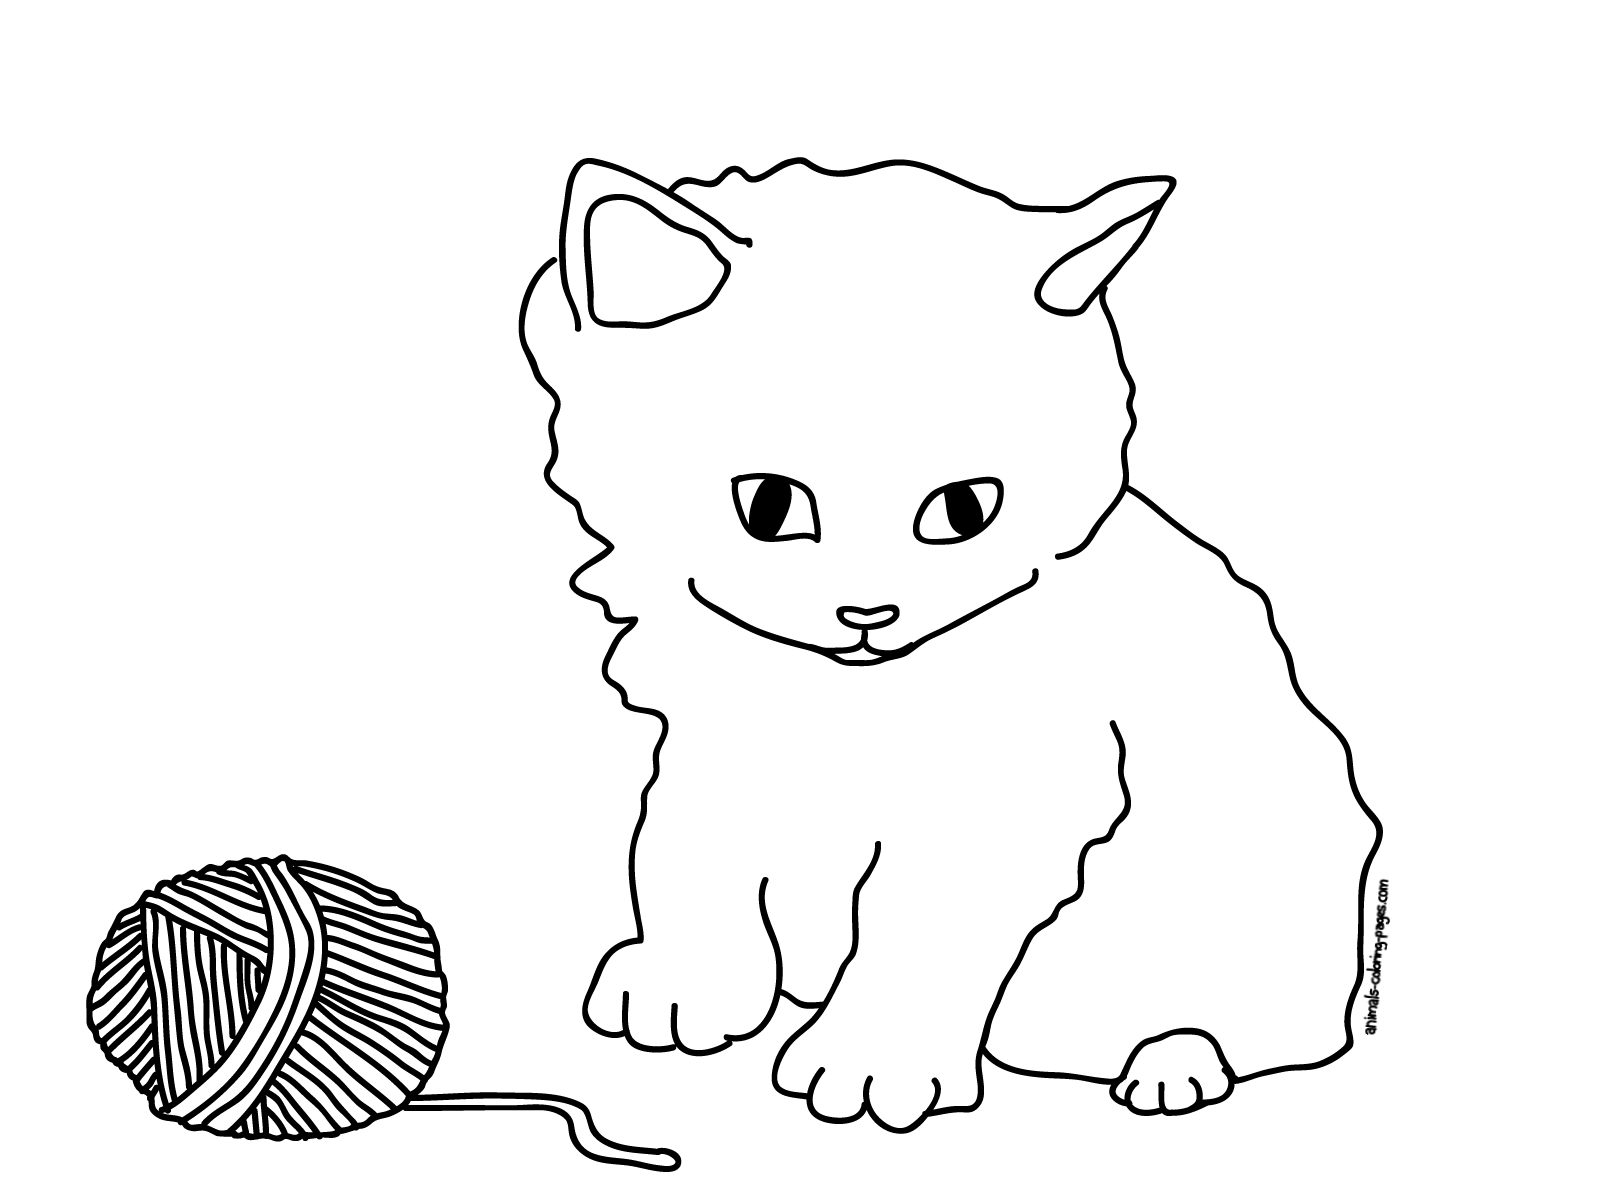 cat coloring pages free printable cat coloring page free printable coloring pages printable free cat pages coloring